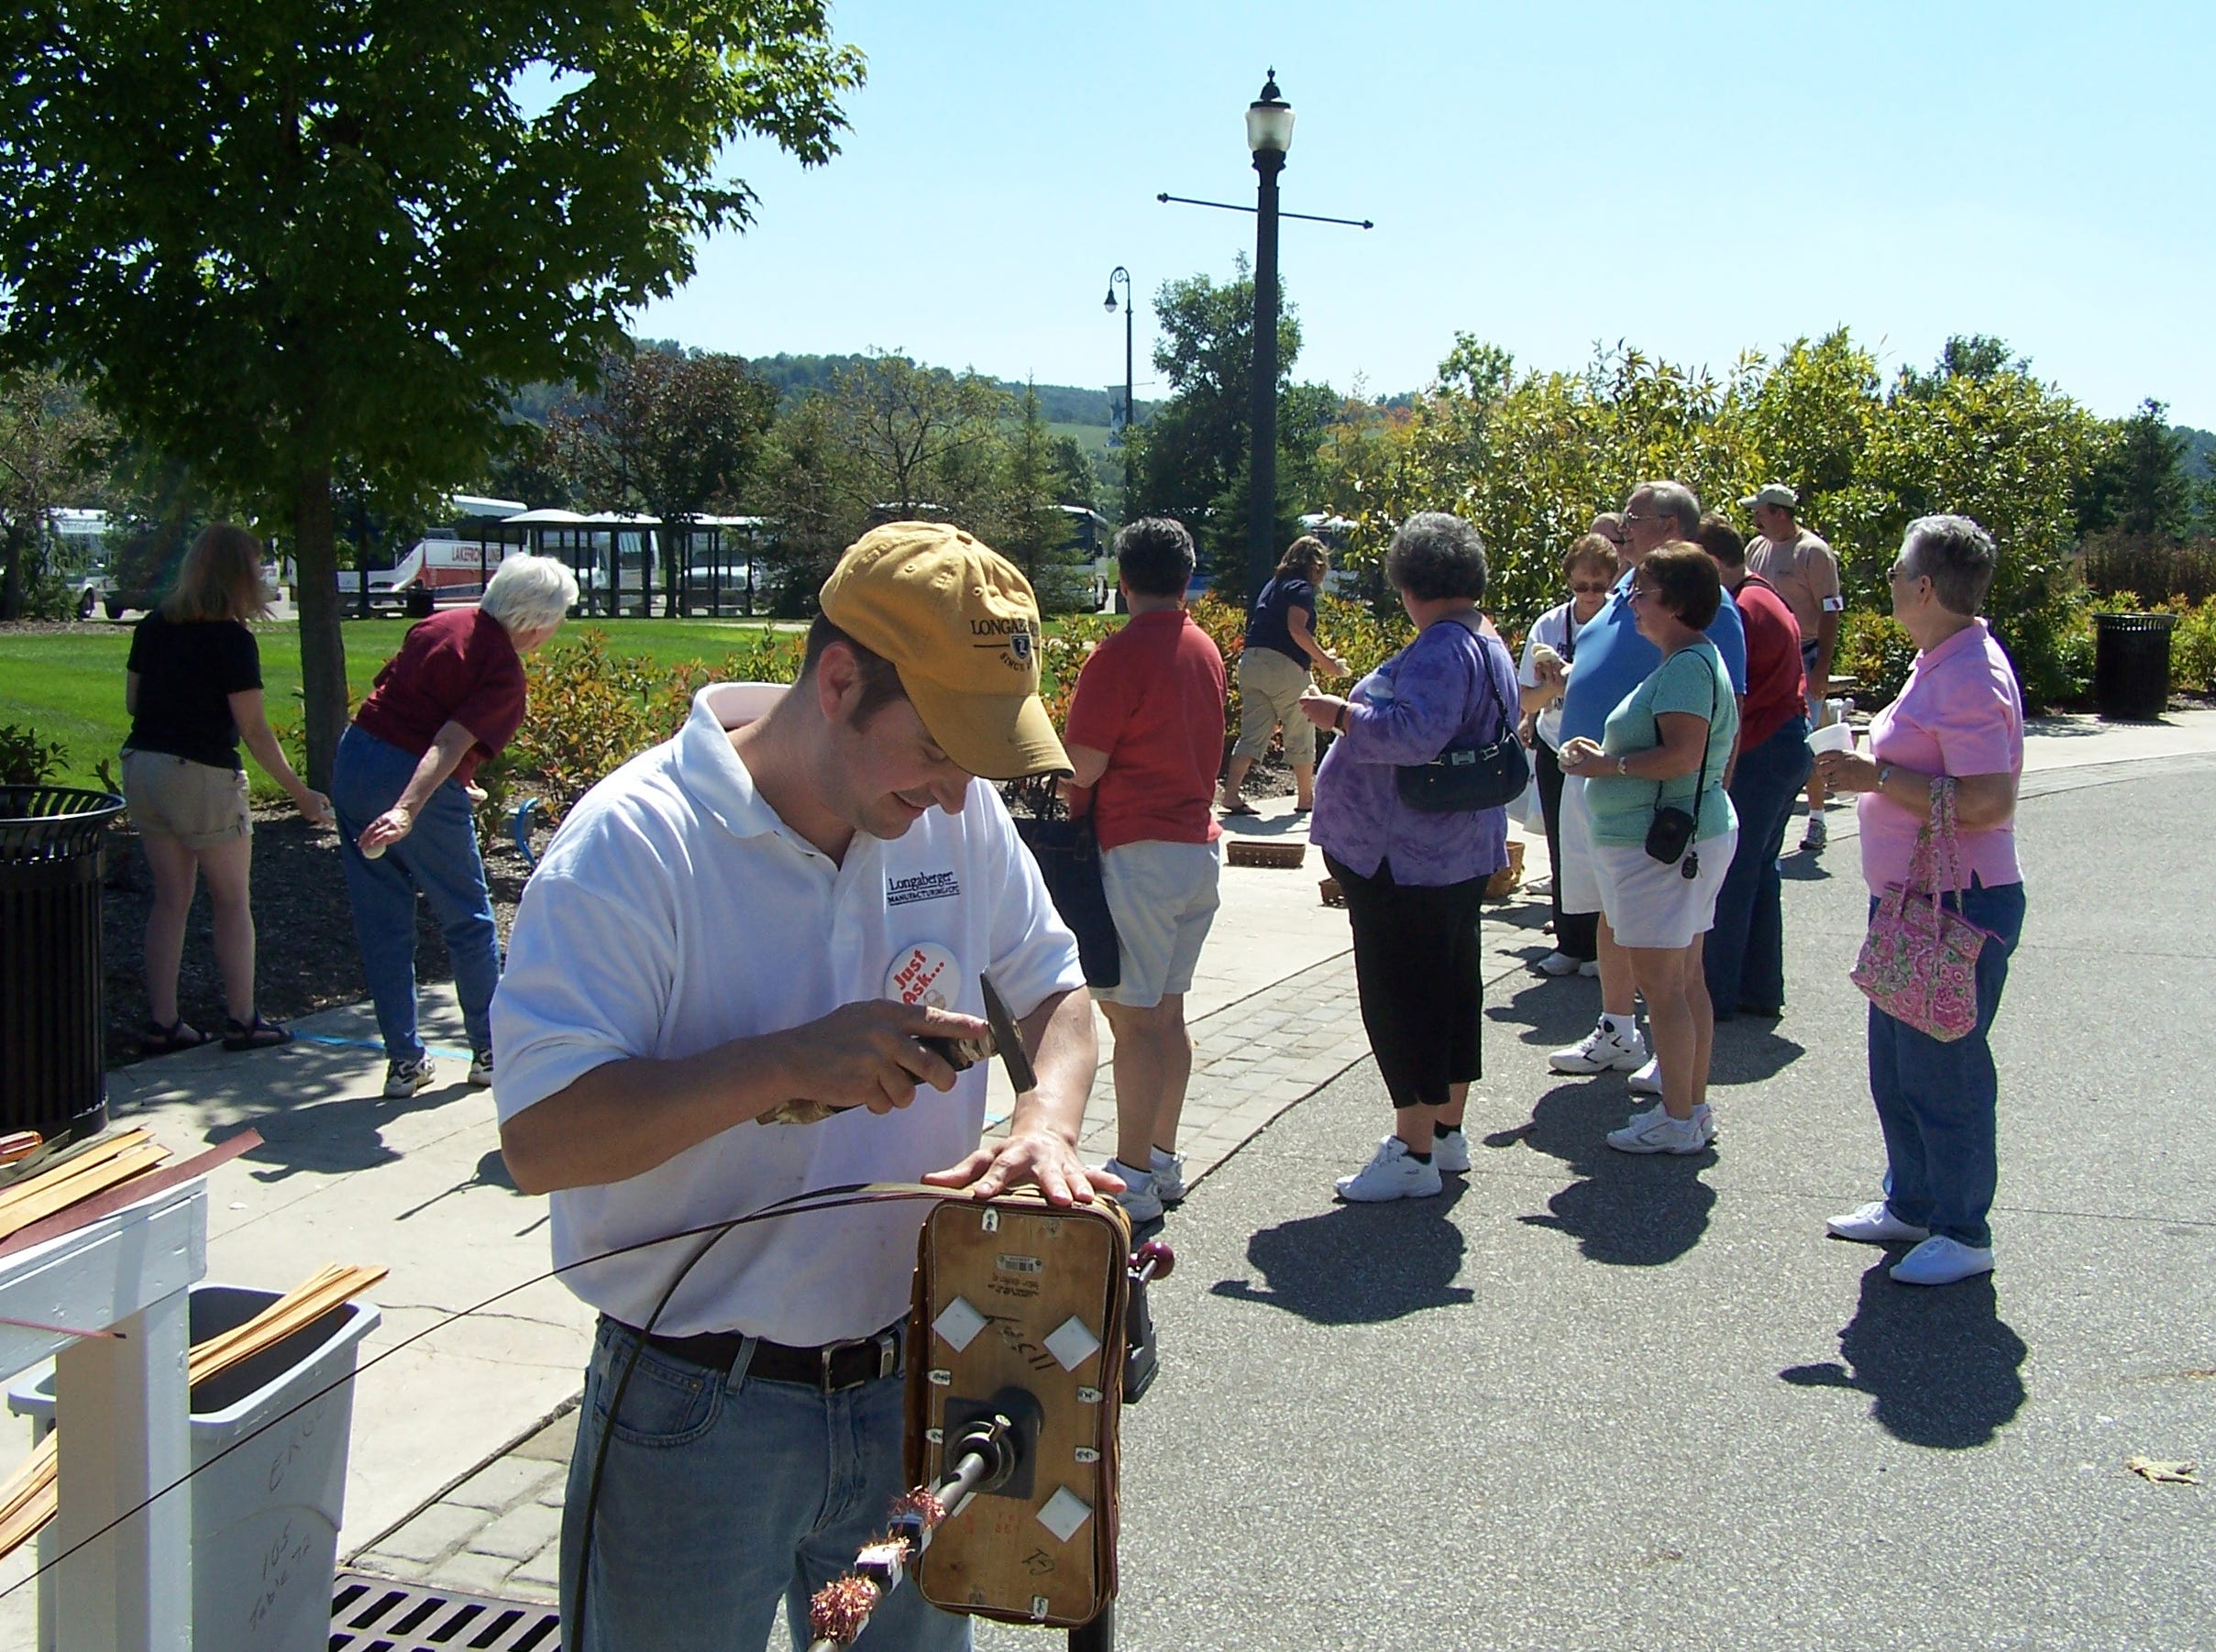 17 year Longaberger employee, Craig Wilcox, weaves one of the six special edition bread baskets as a line forms behind him for the bread basket toss game at Friday's Heritage Days event at the Longaberger Homestead.